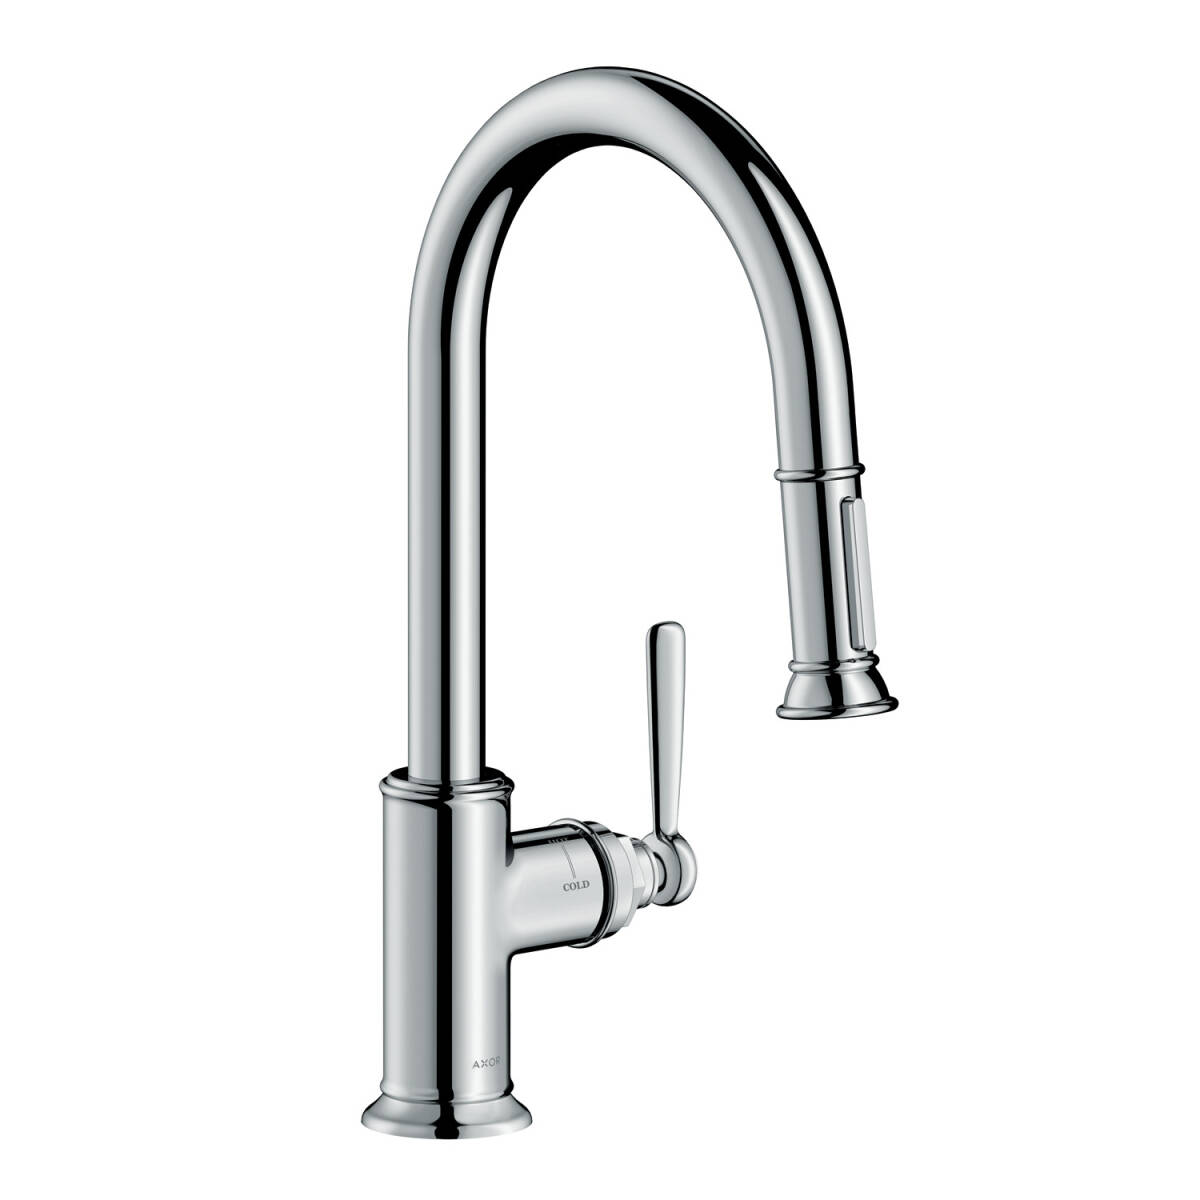 Single lever kitchen mixer 180 with pull-out spray, Chrome, 16581001